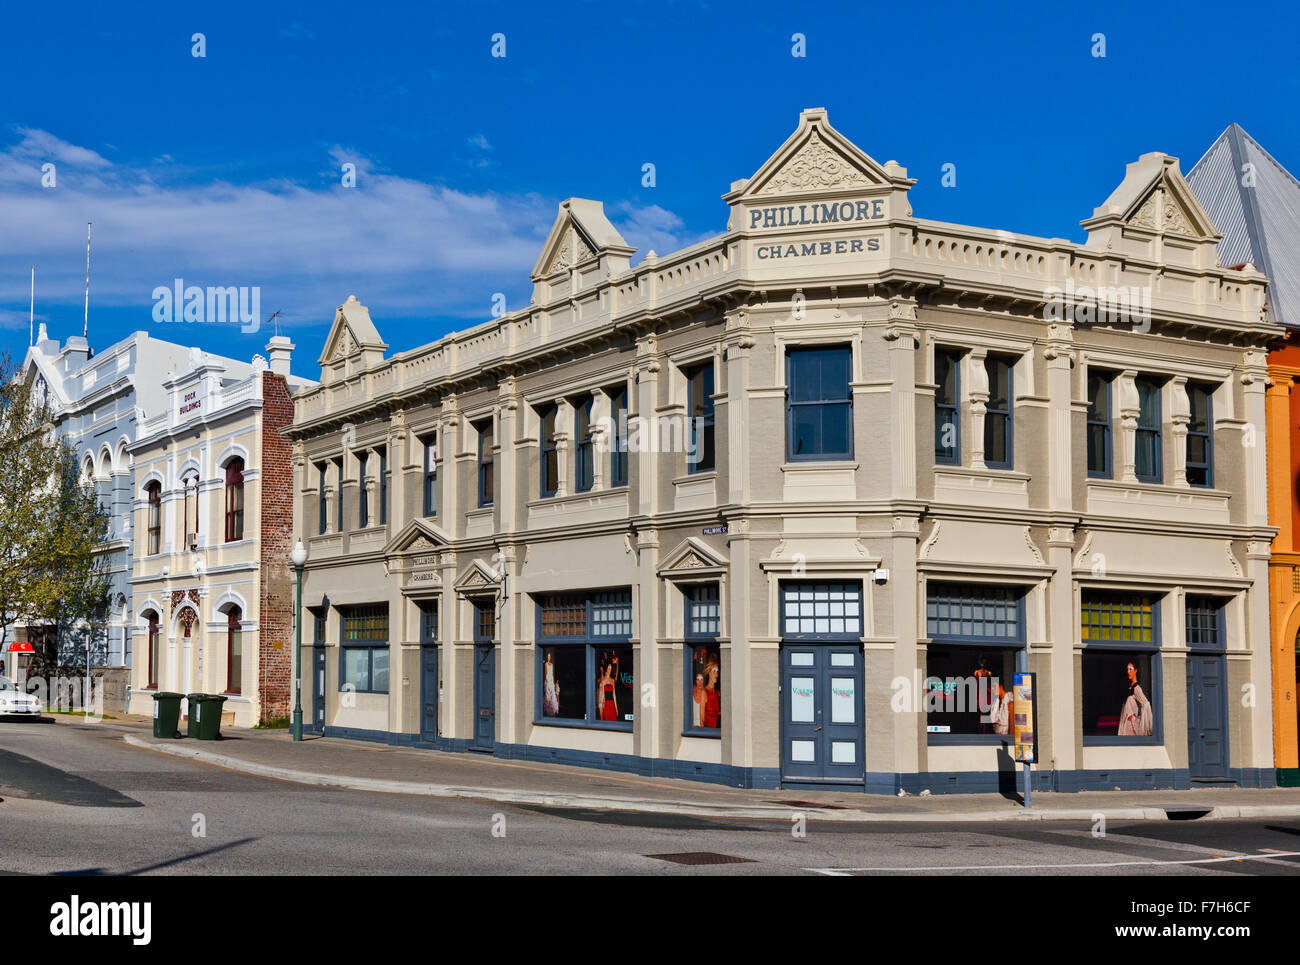 Australia, Western Australia, Fremantle, heritage buildings in the West End Conservation area, Phillimore Chambers - Stock Image